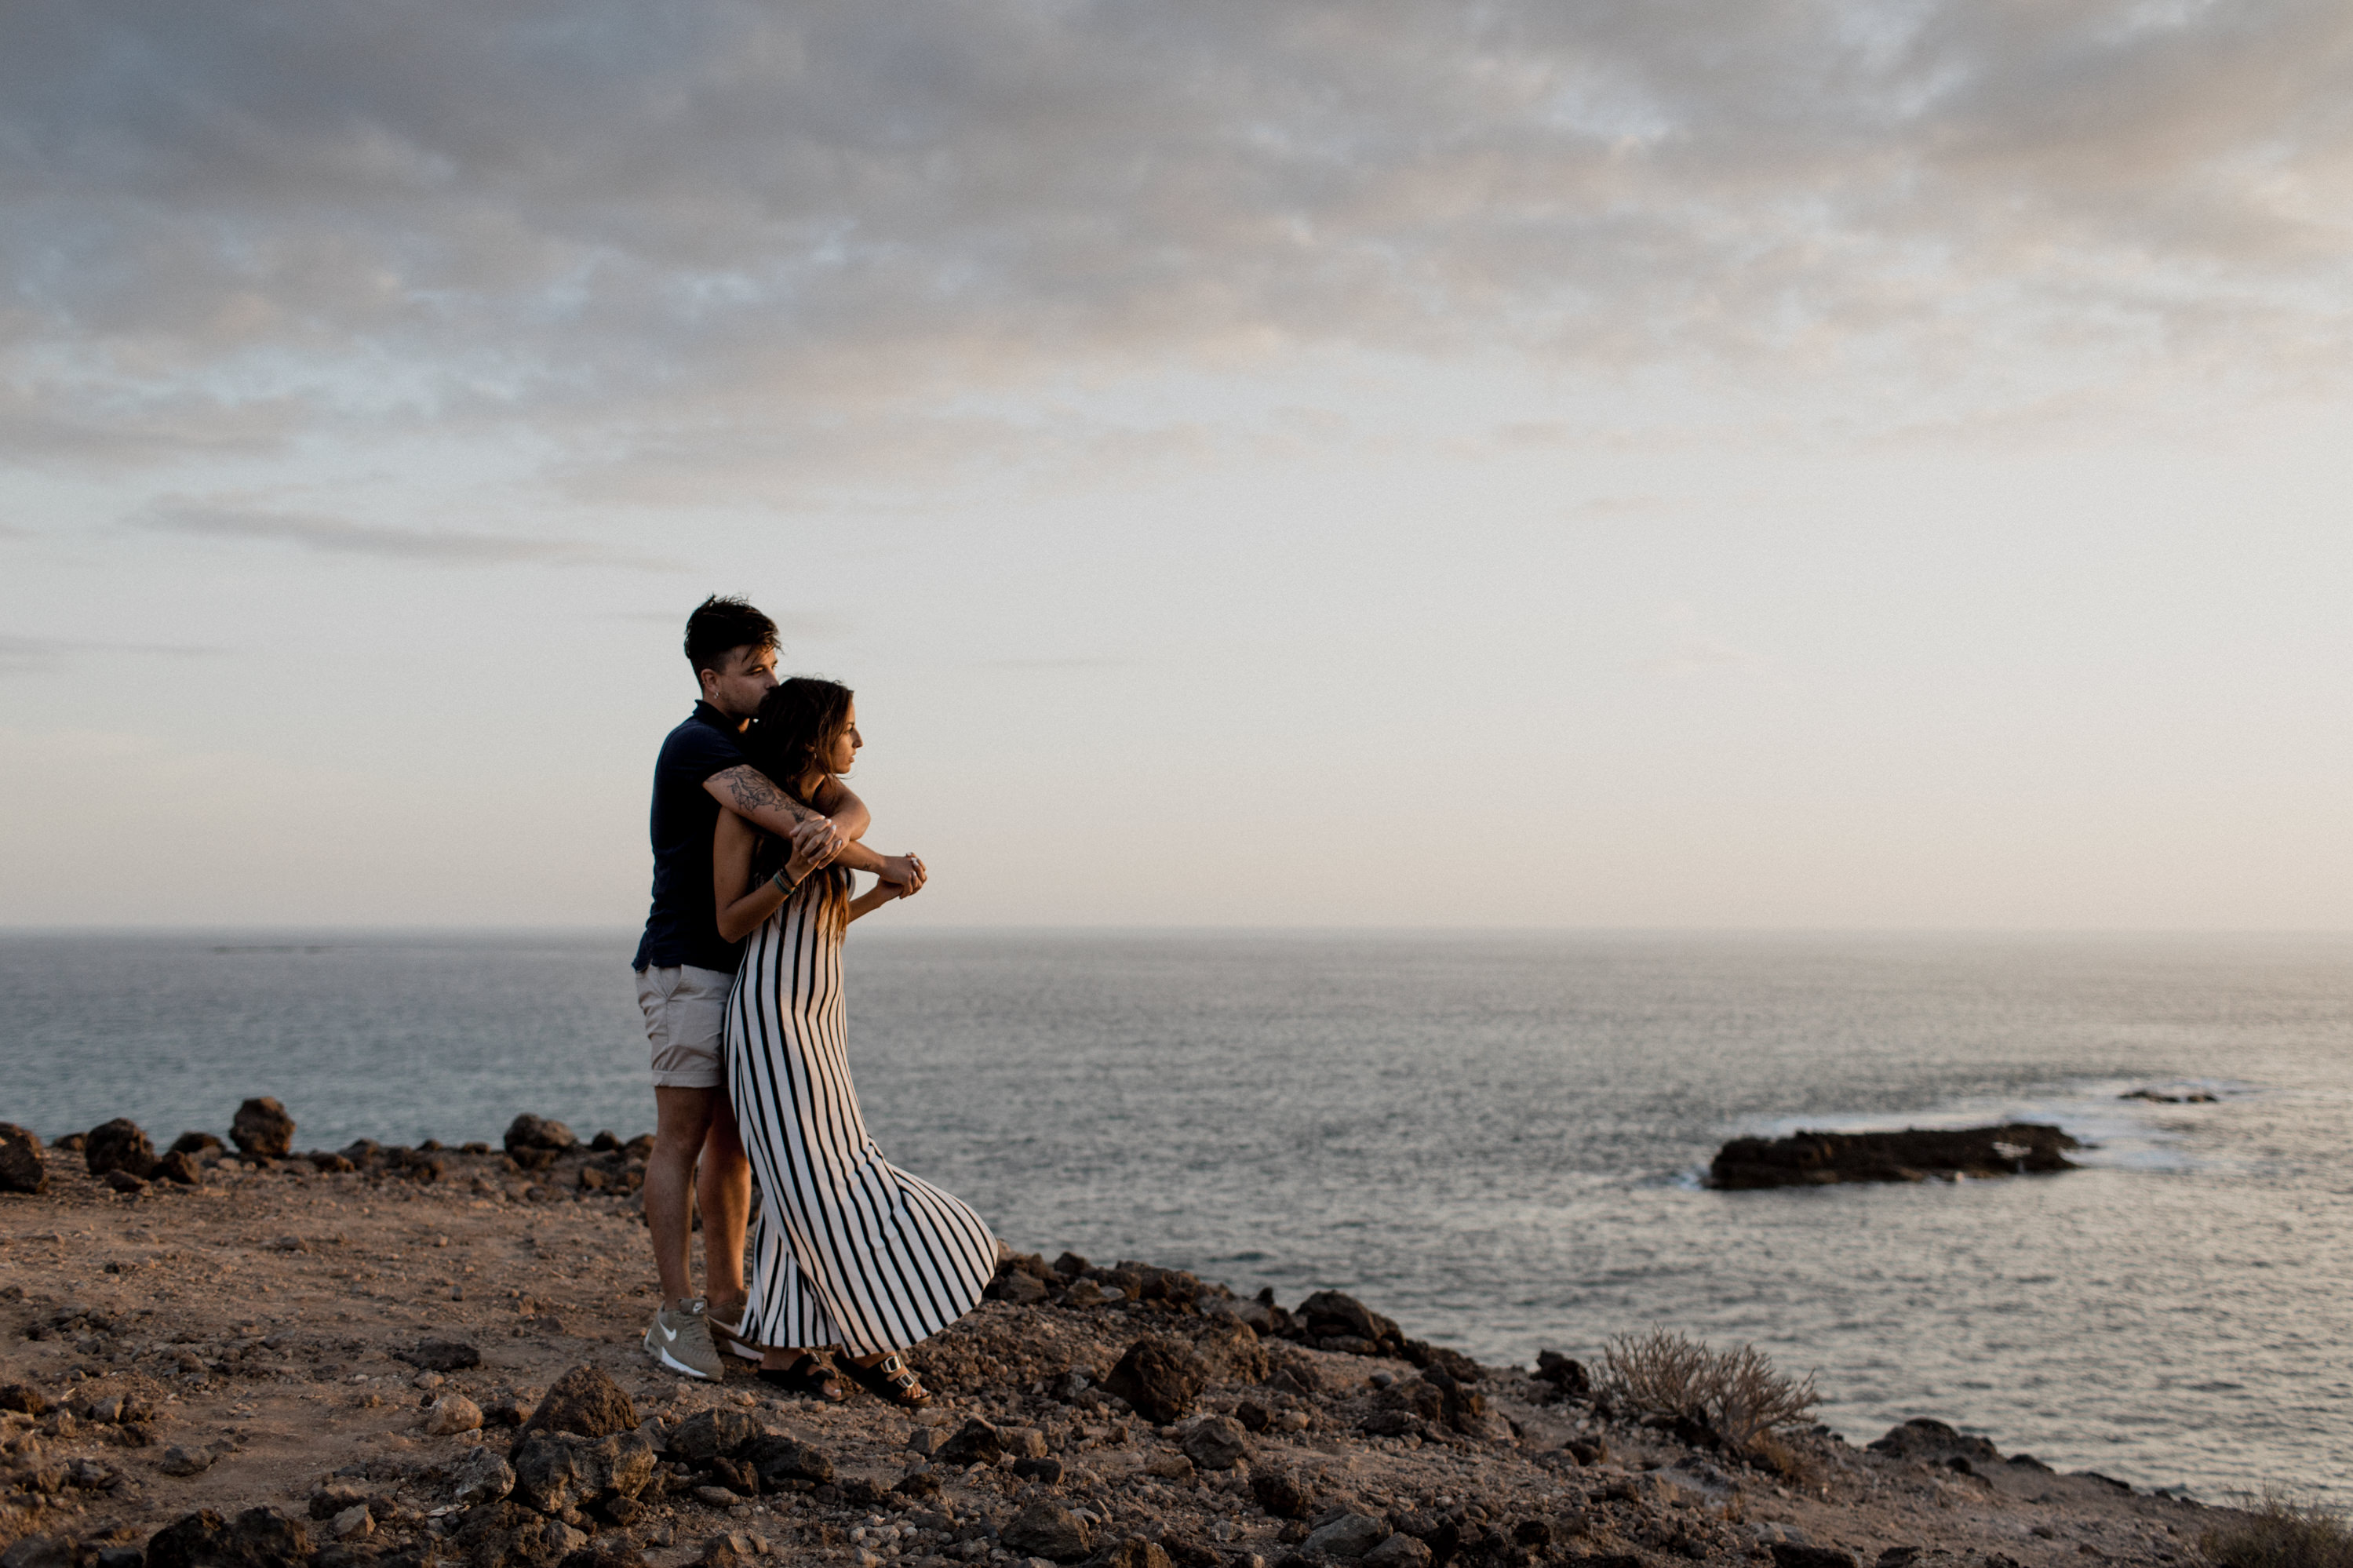 Sunset Couple Shoot in Costa Adeje. Shot by the international wedding photographer couple Tom und Lia Fotografie from Rostock.